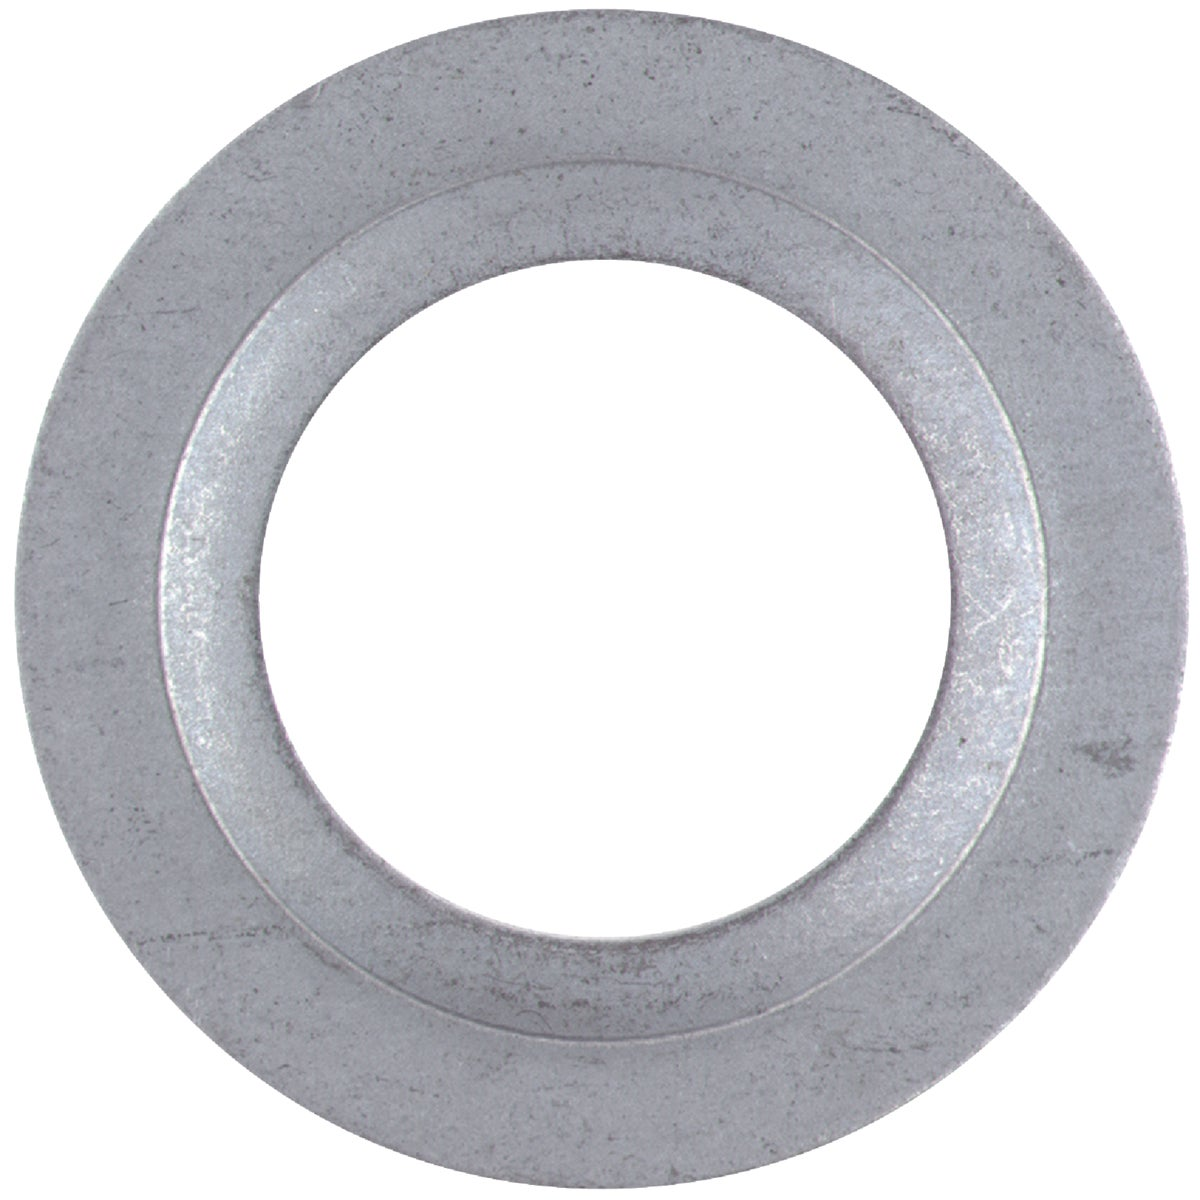 1X3/4 REDUCE WASHER - WA1322 by Thomas & Betts